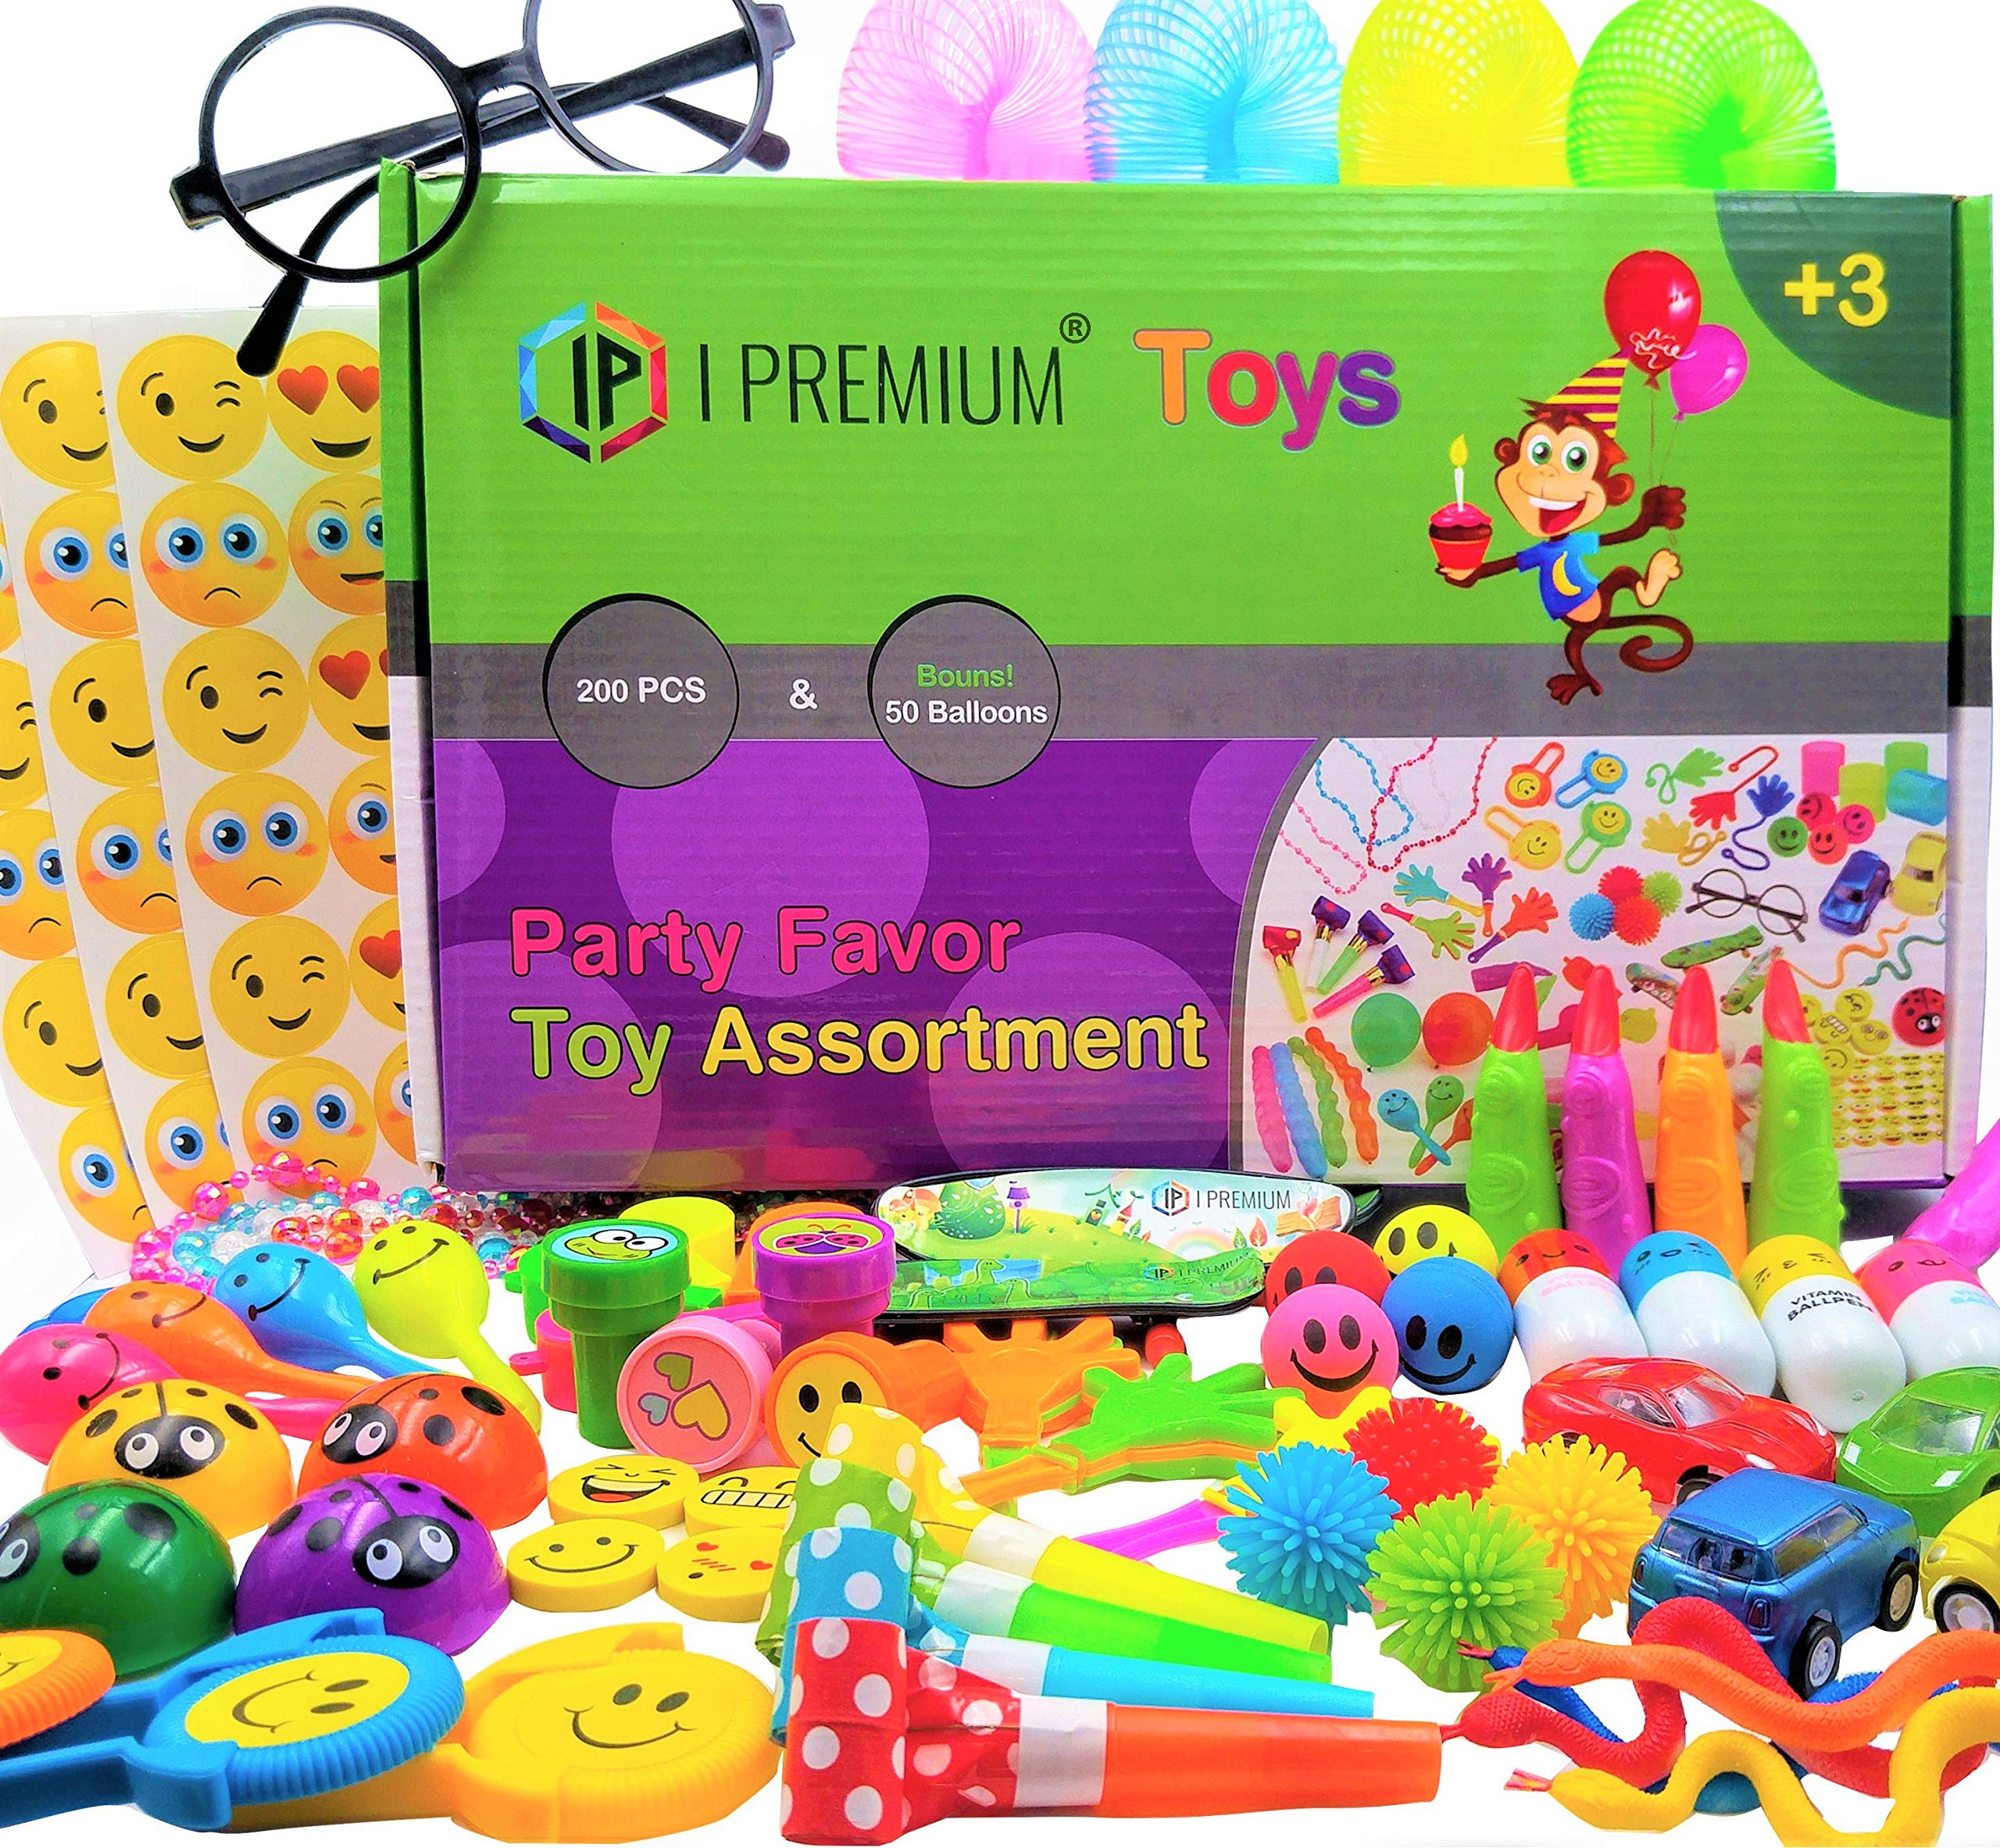 IP I Premium 250 PCS Toy Assortment, Party Favors For Kids, Bulk Toys Best As Pinata Filler, Goodie Bag Fillers, Treasure Box Prizes For Classroom, Carnival And For Birthday. For Boys And Girls